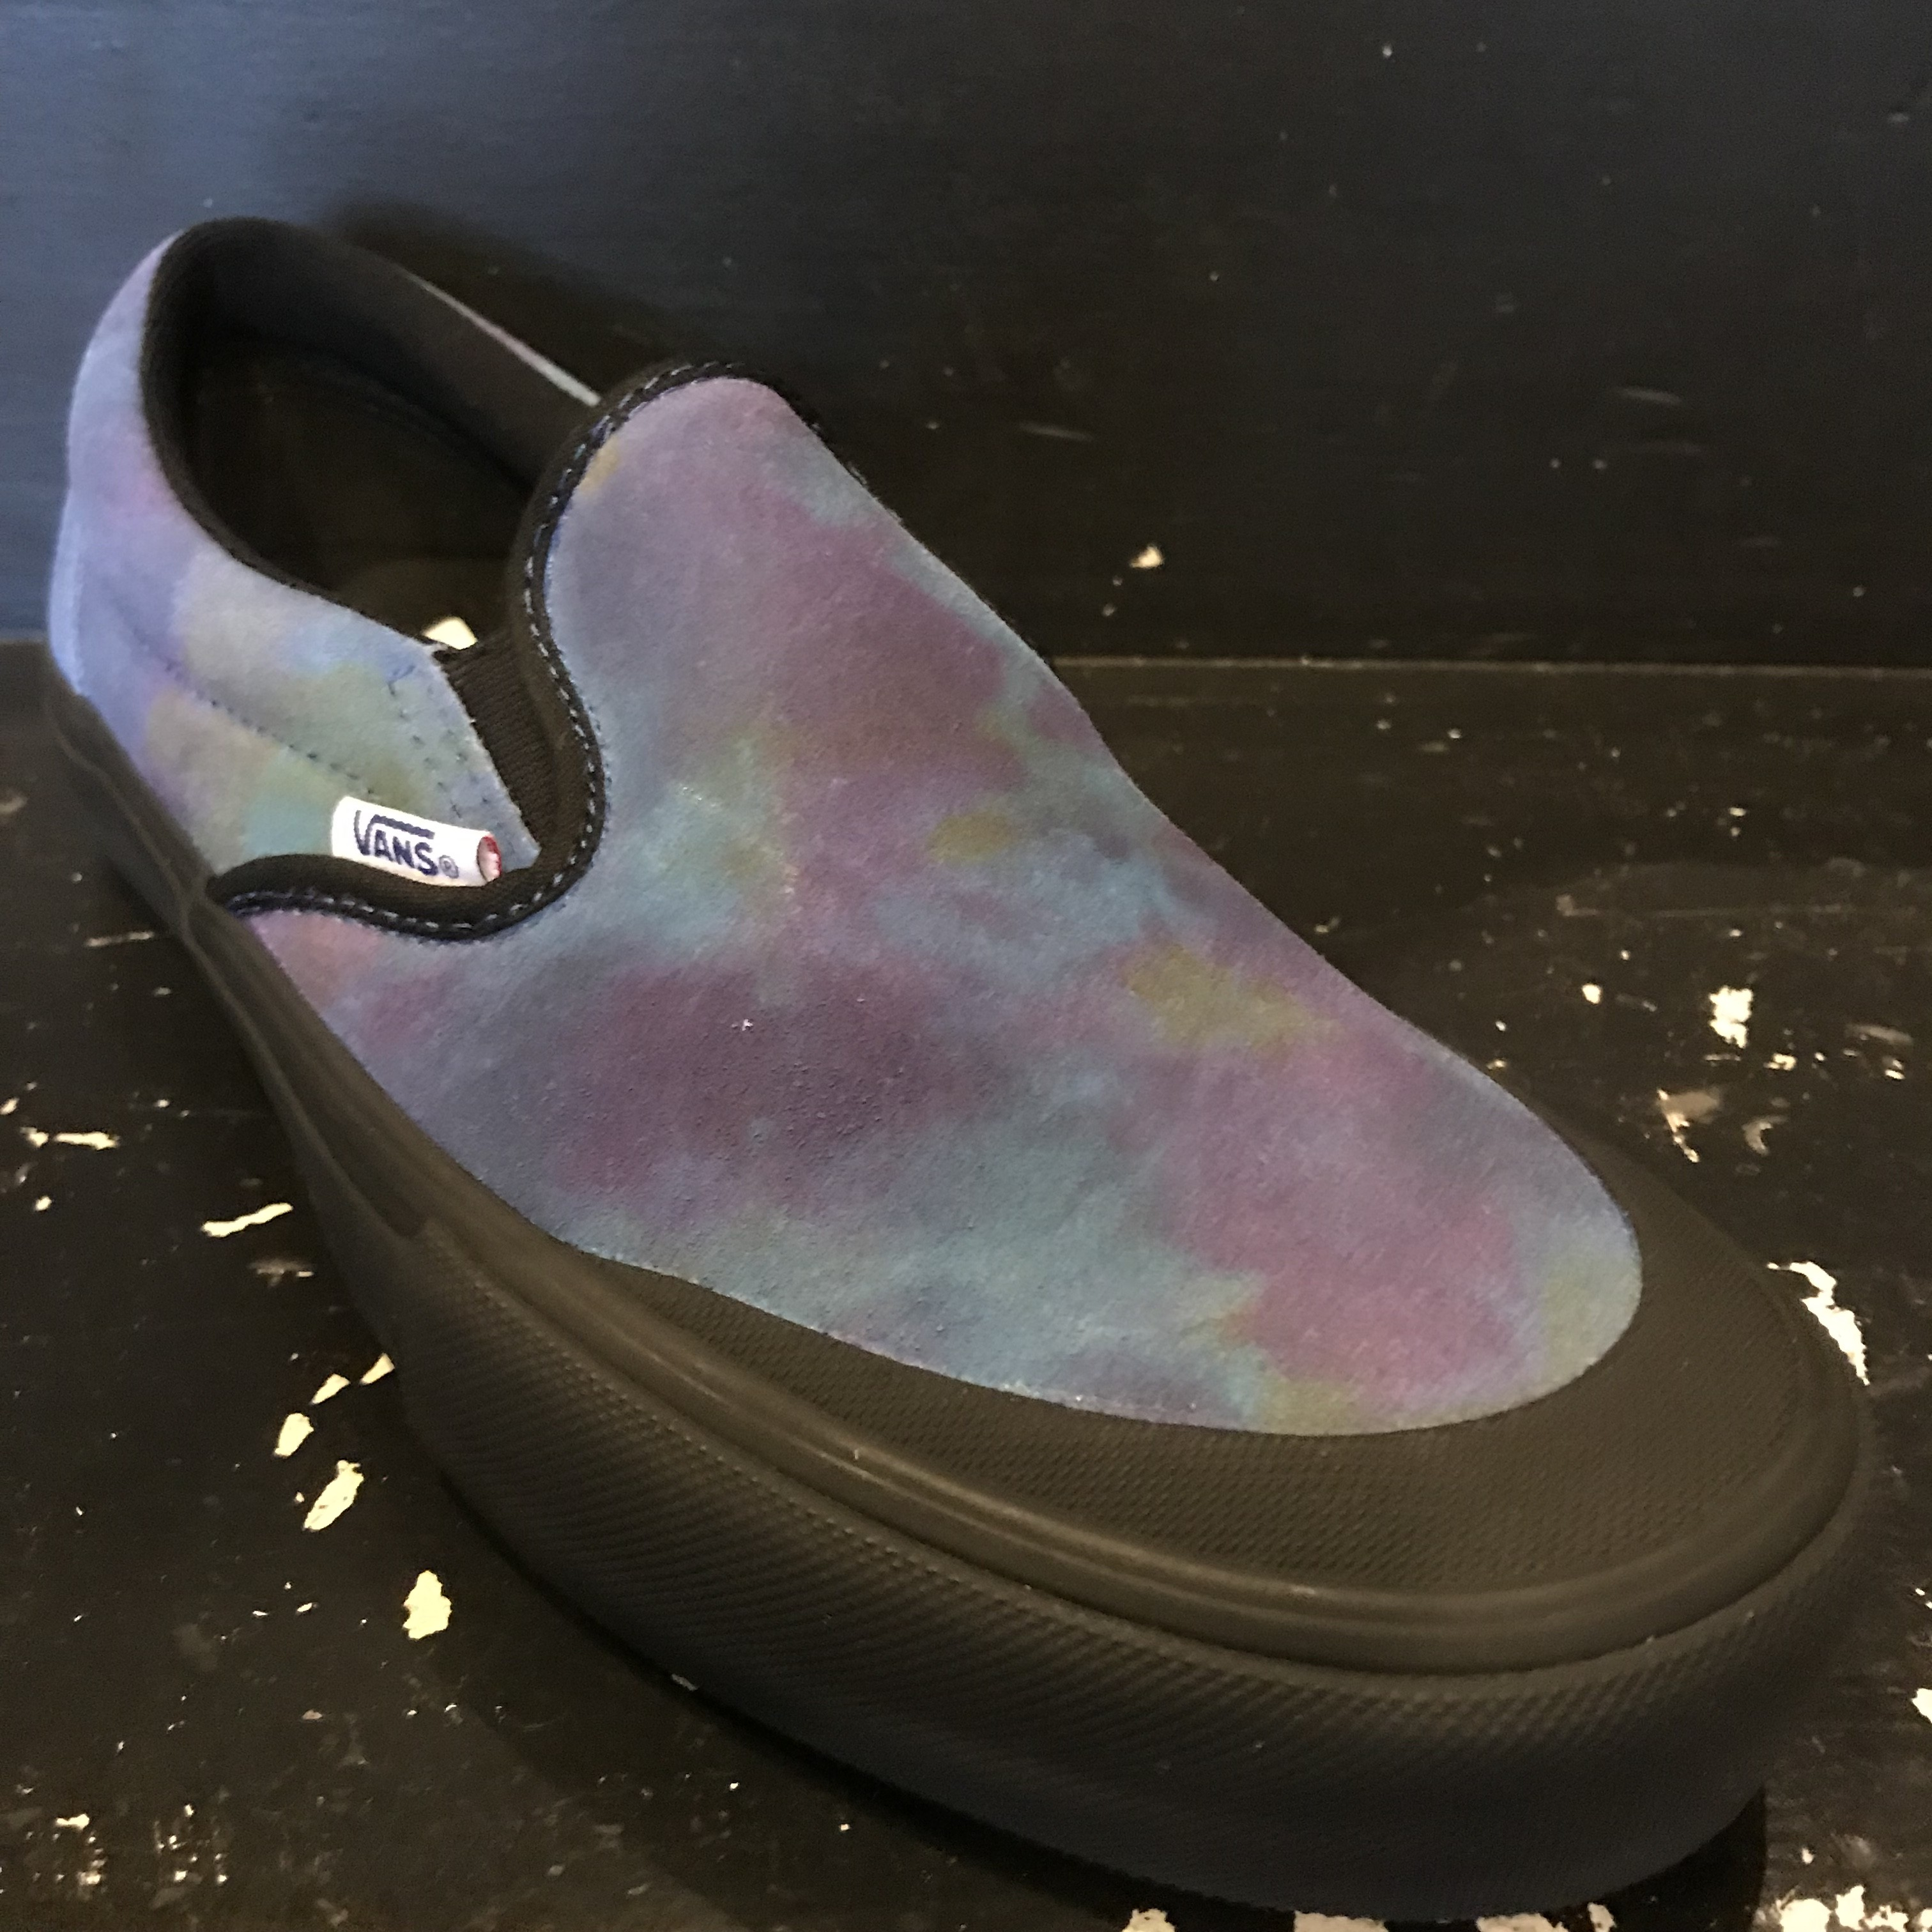 46e05de4c301 New Vans Slip On Pro Ronnie Sandoval Just Came In At Hampden vú ...